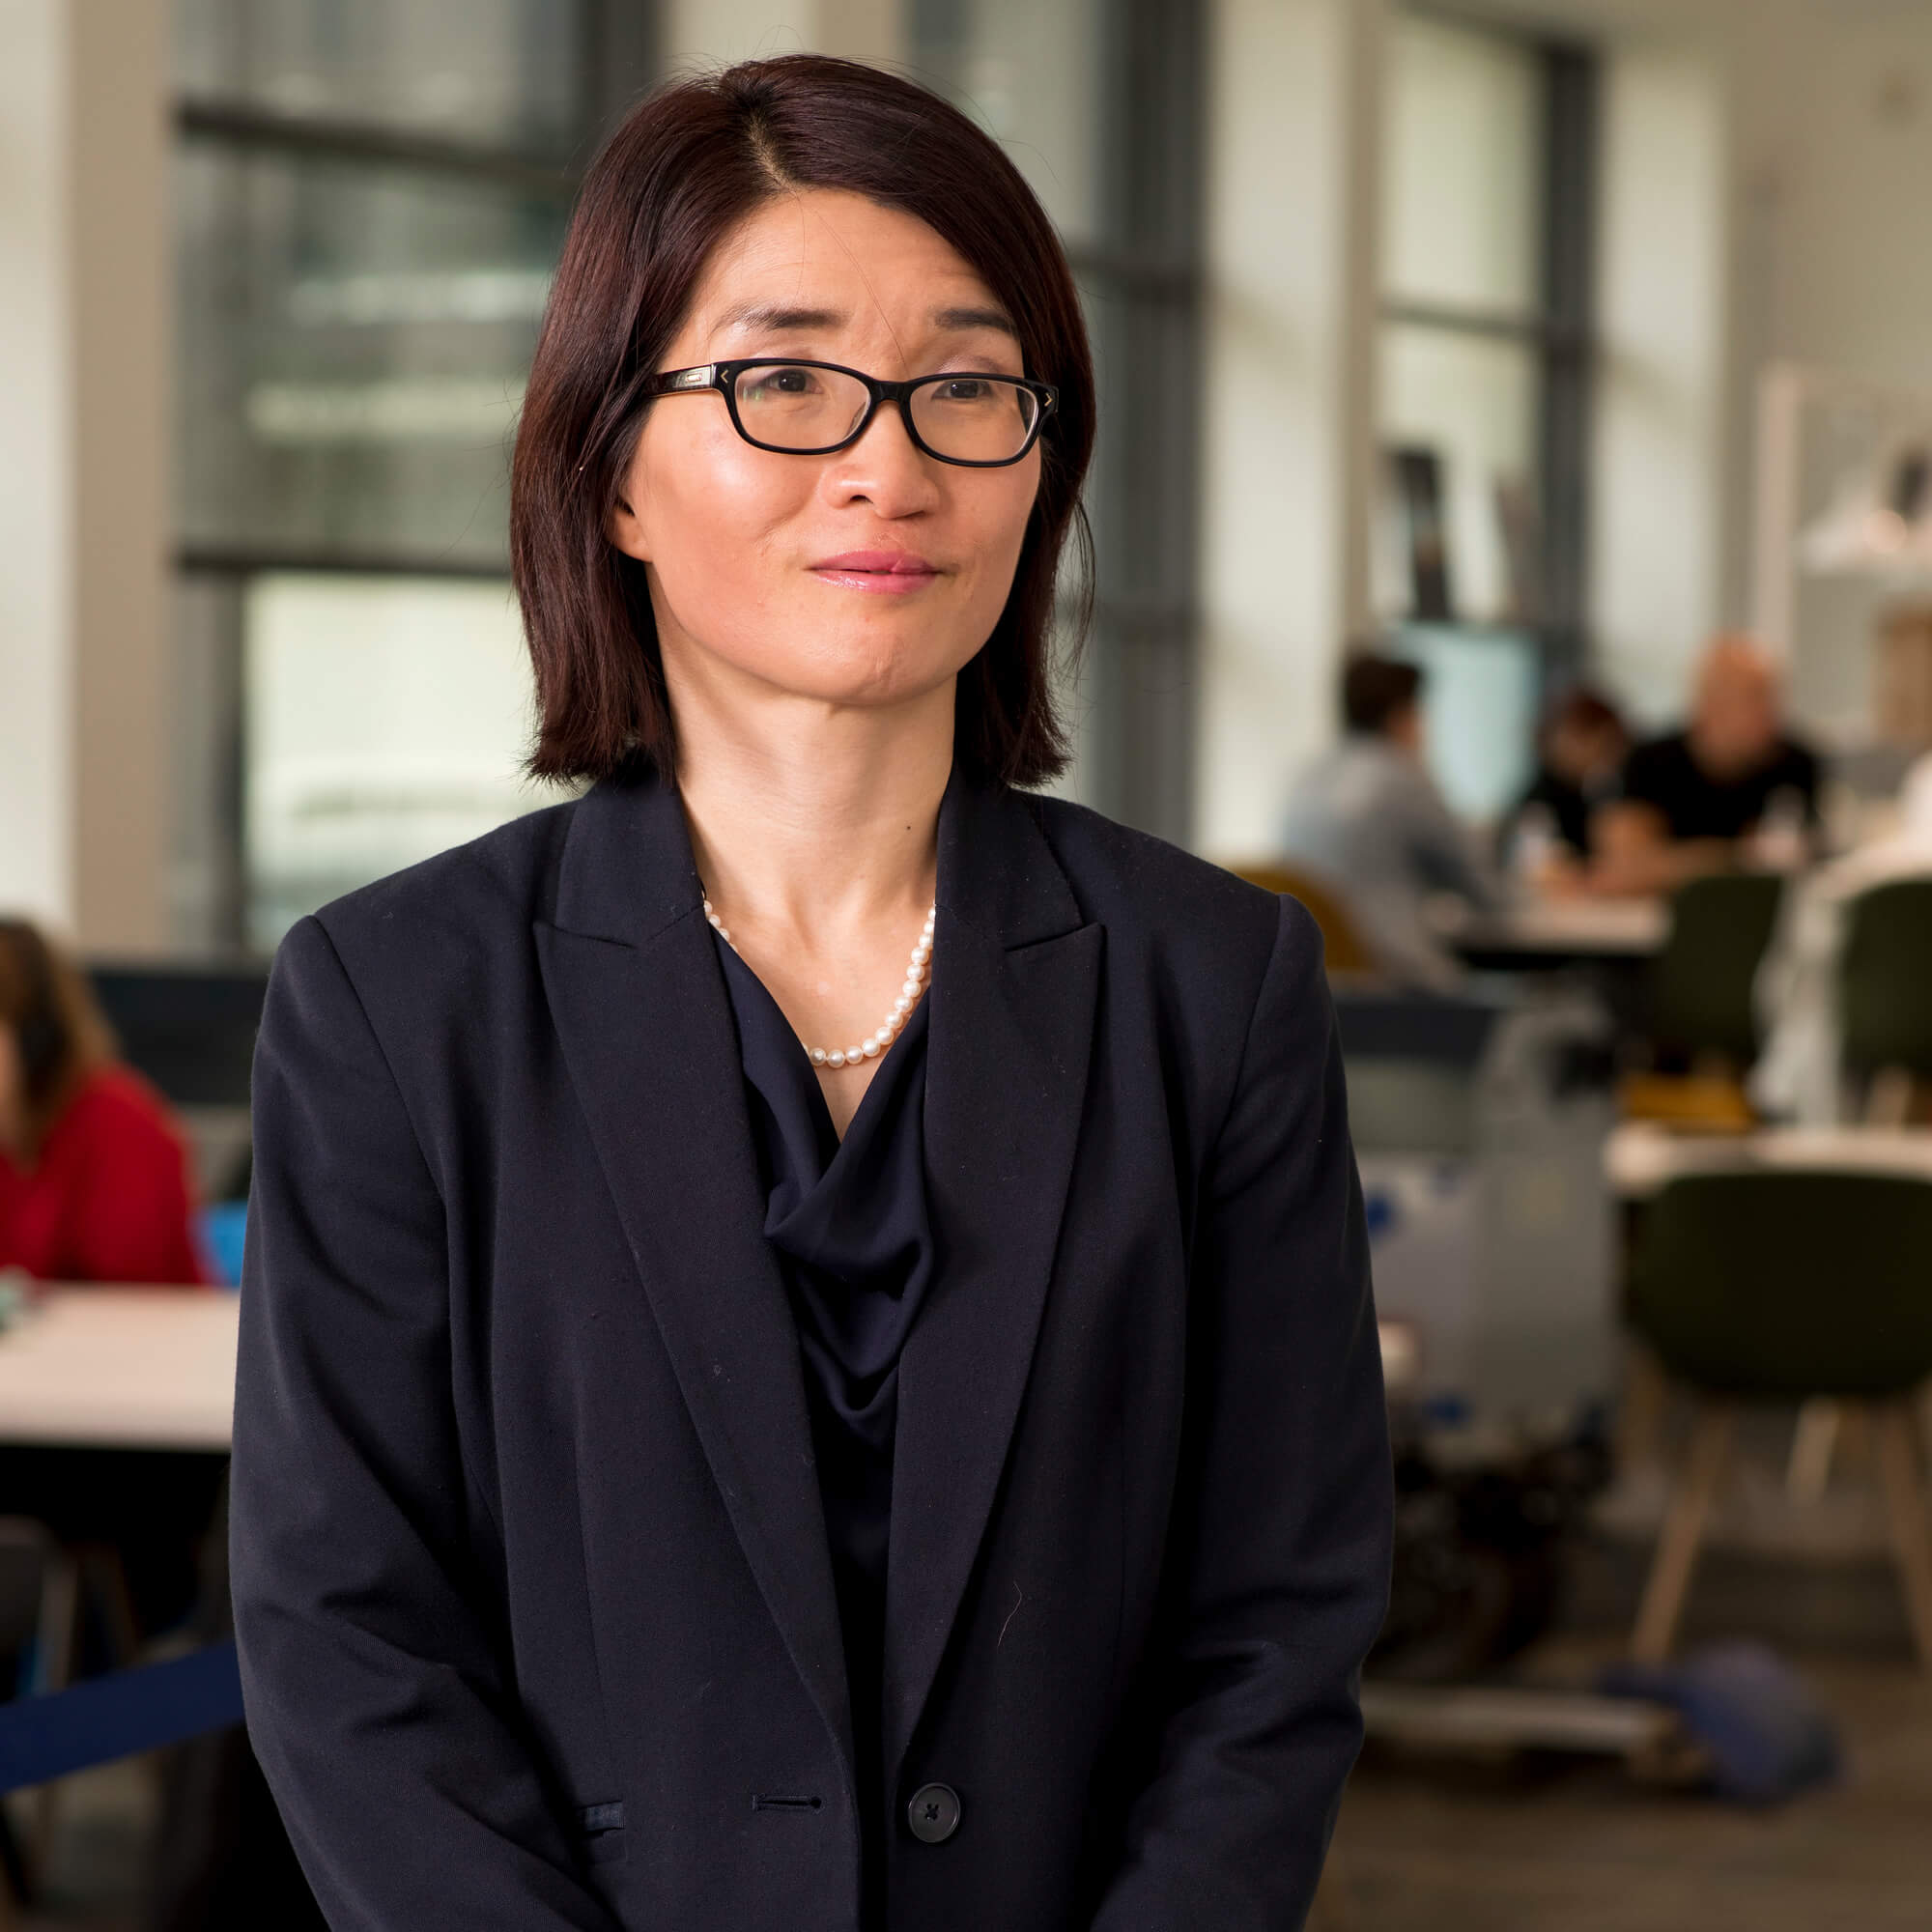 Joanna Poon at our Markeaton Street site